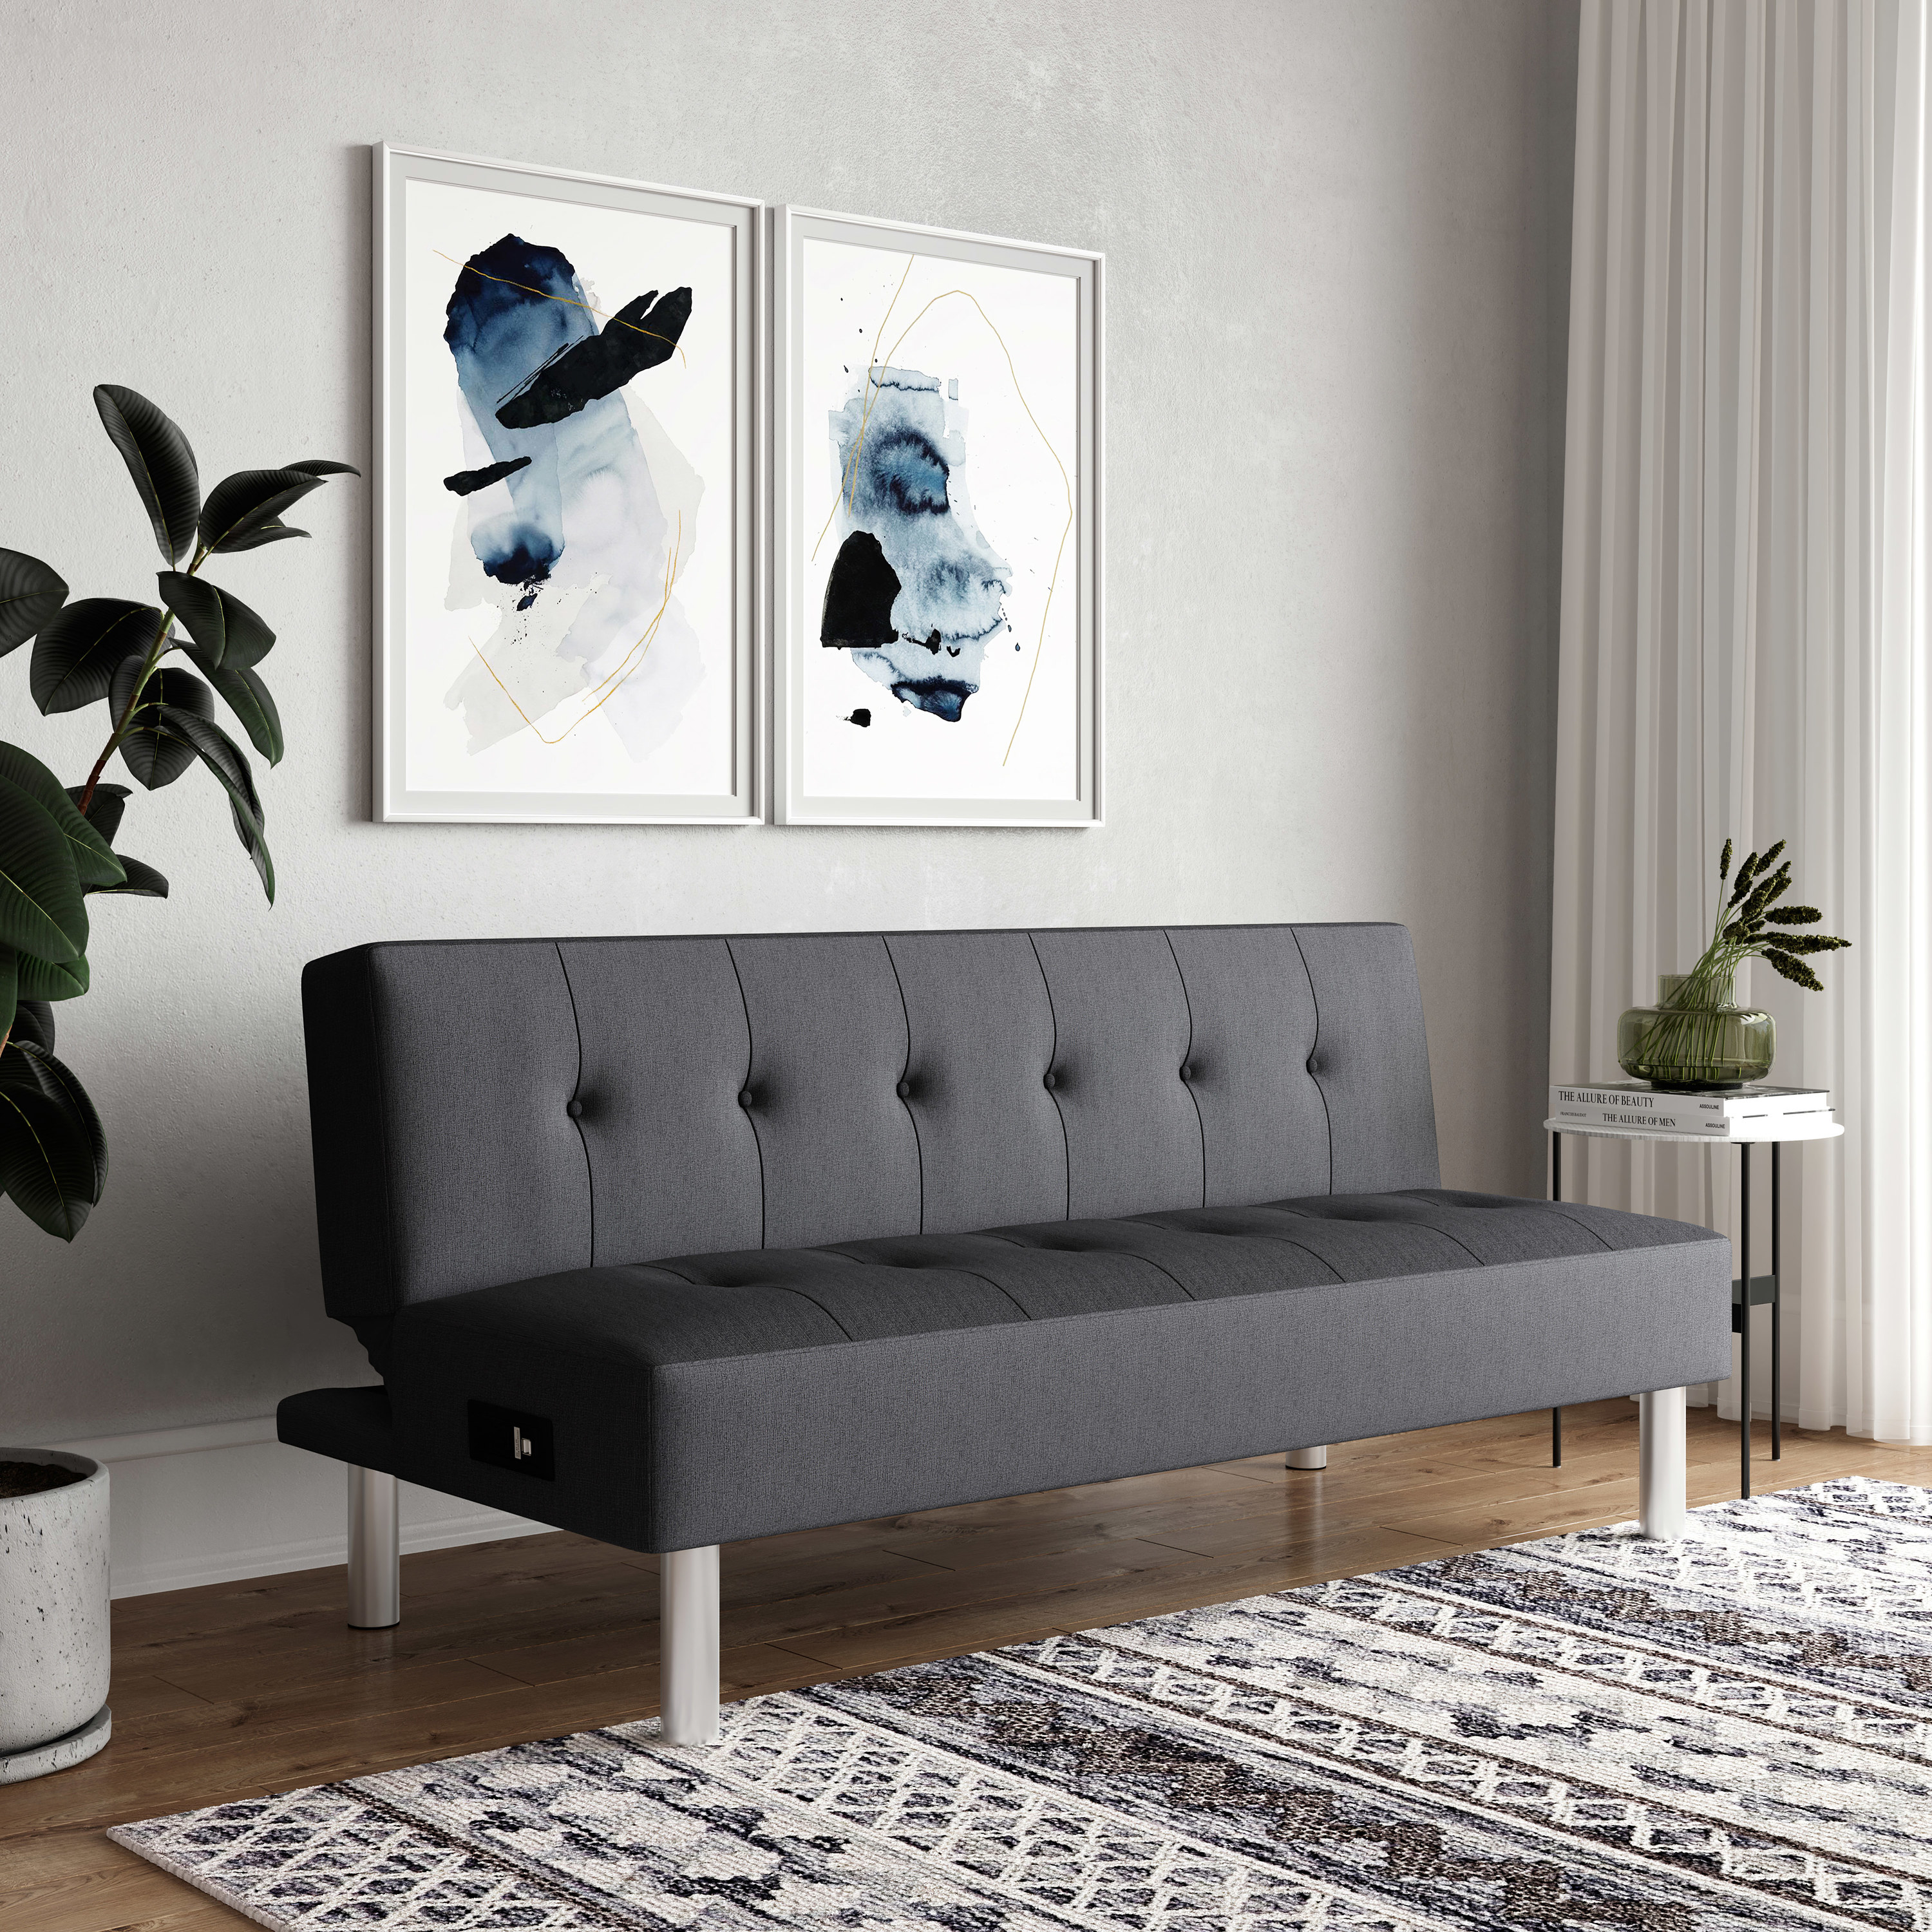 The grey futon in a living room